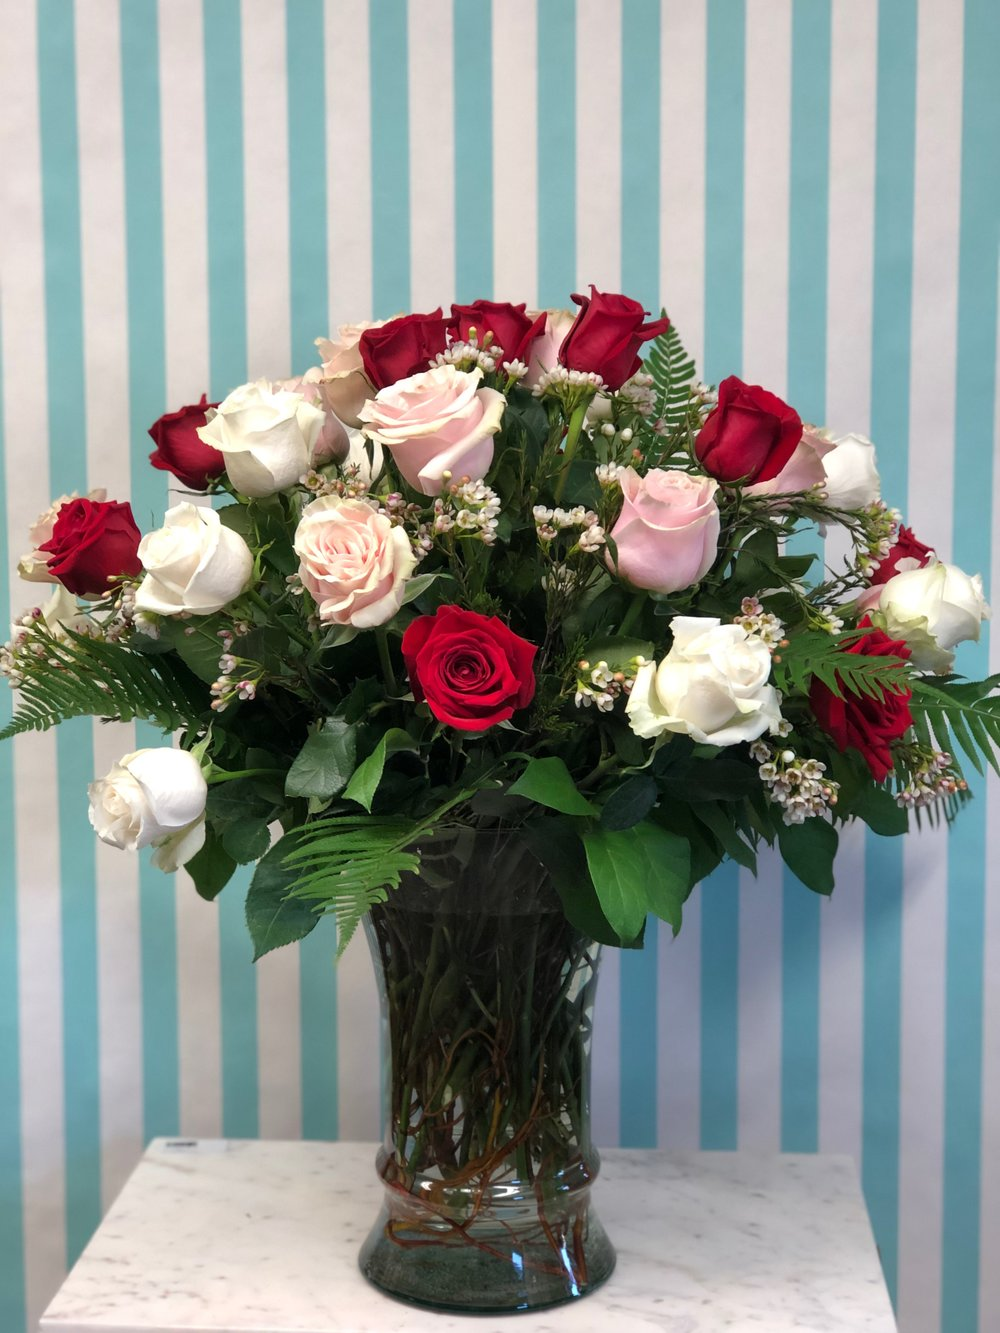 Mac Daddy-$300   Show her how much you love her with this spectacular display. 3 dozen long stem roses arranged in a vase with all the bells and whistles. Colors may vary unless specified.